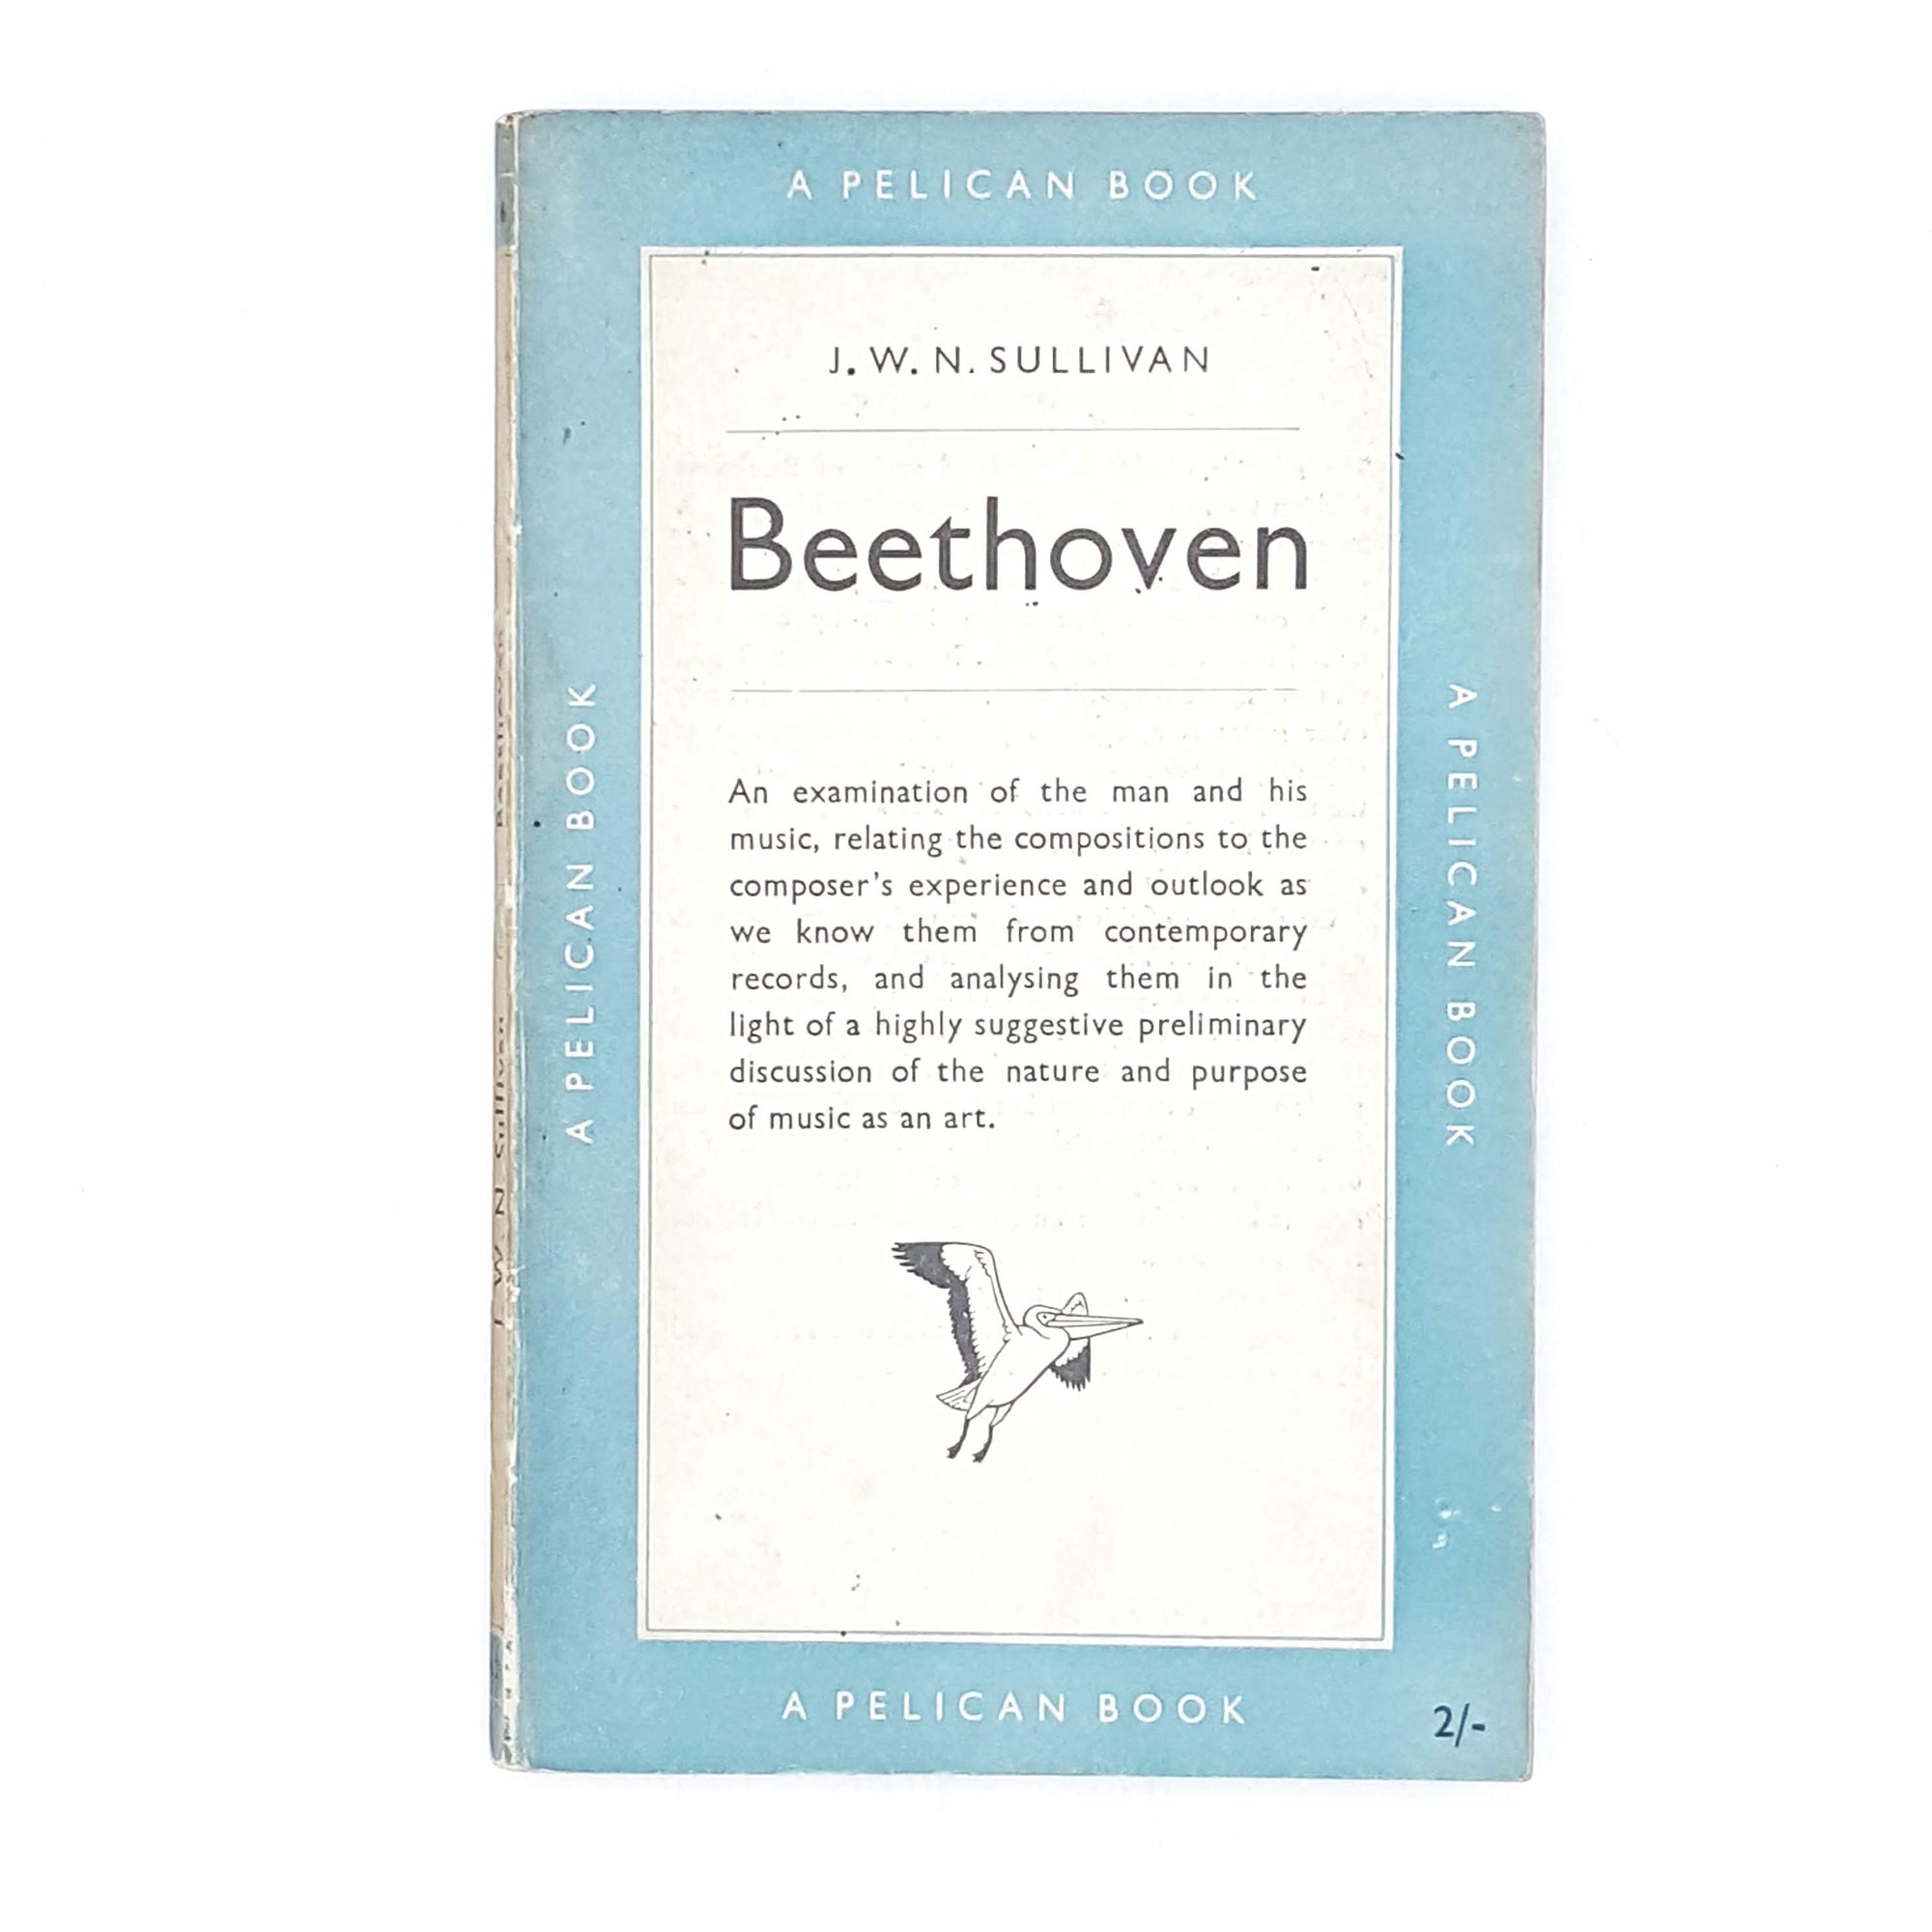 Beethoven by J. W. N. Sullivan 1951